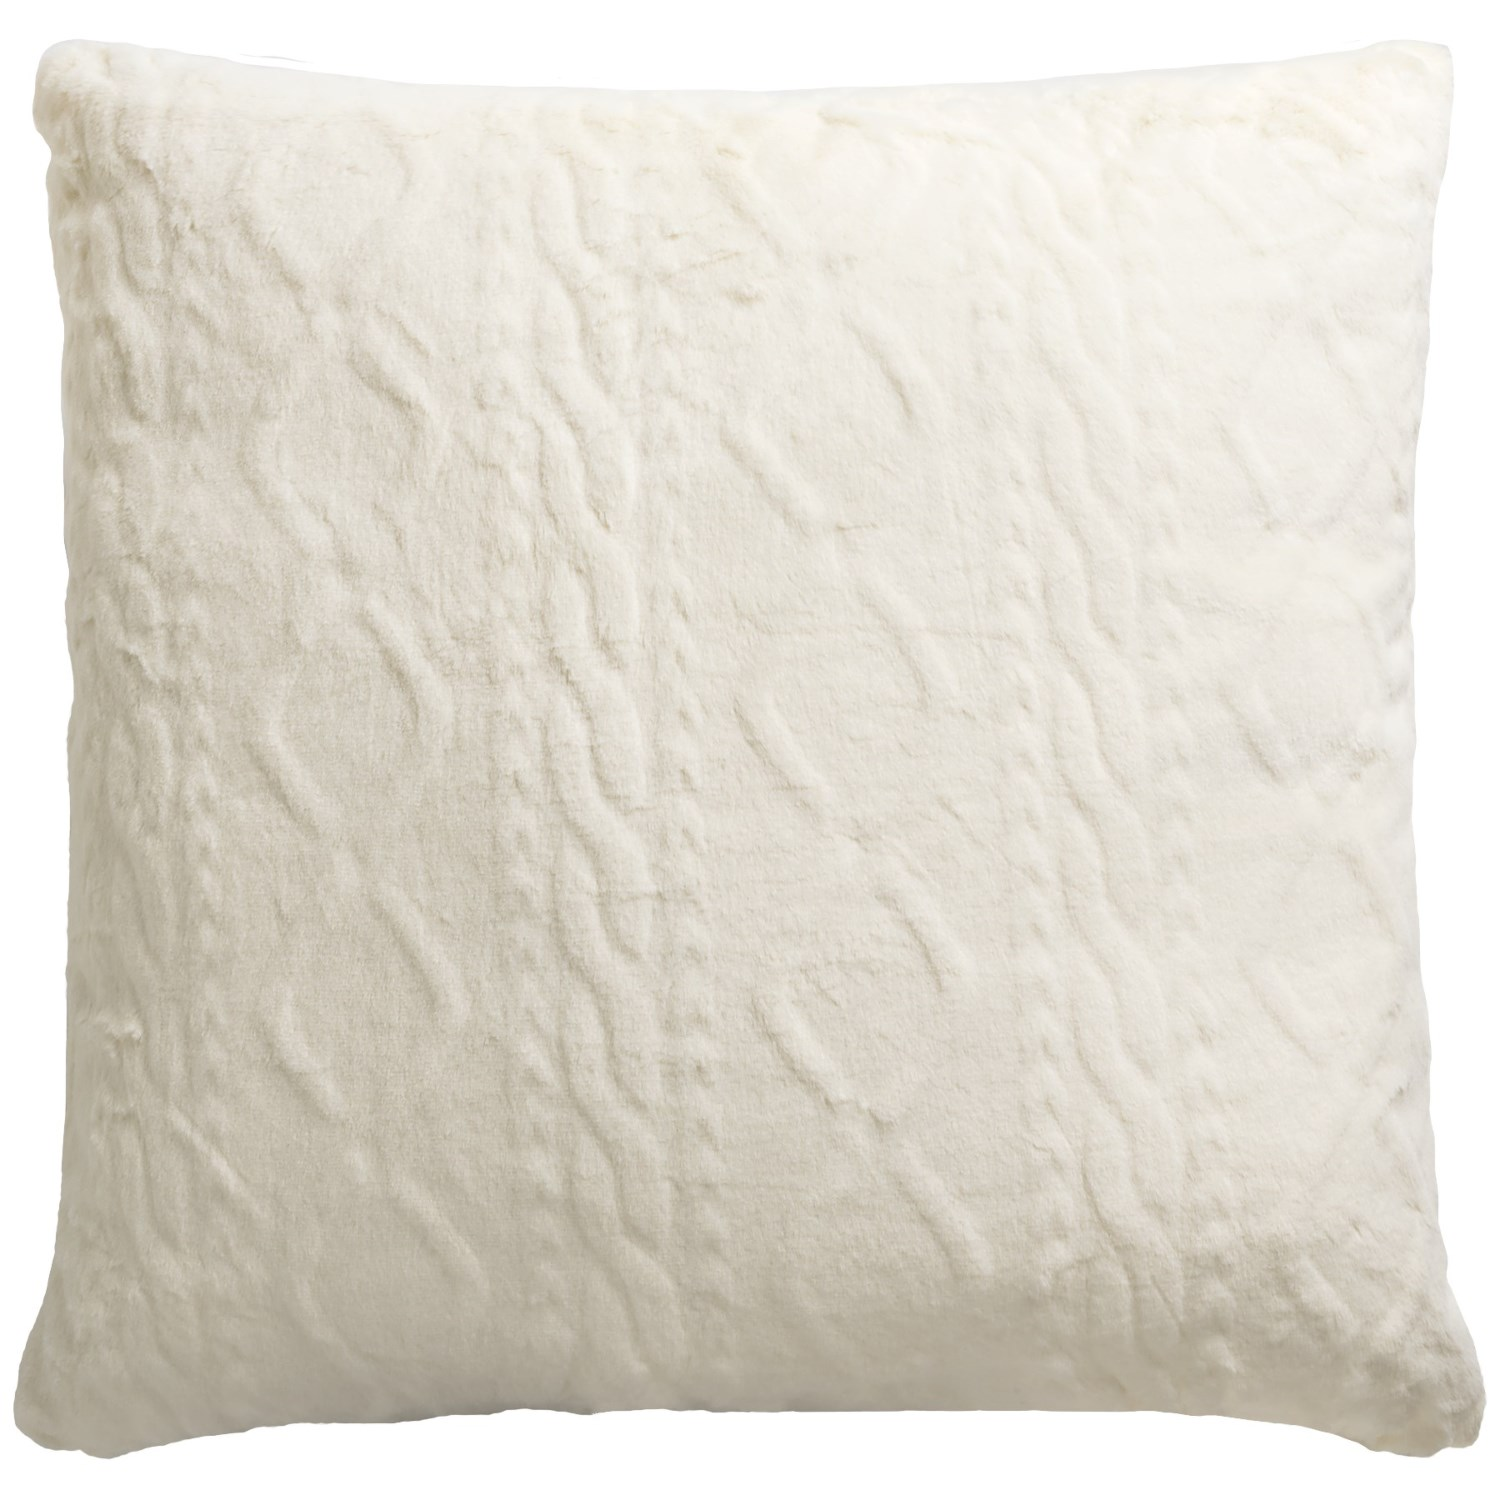 "Max Studio Concord Faux-Fur Throw Pillow - 20x20"" - Save 20%"